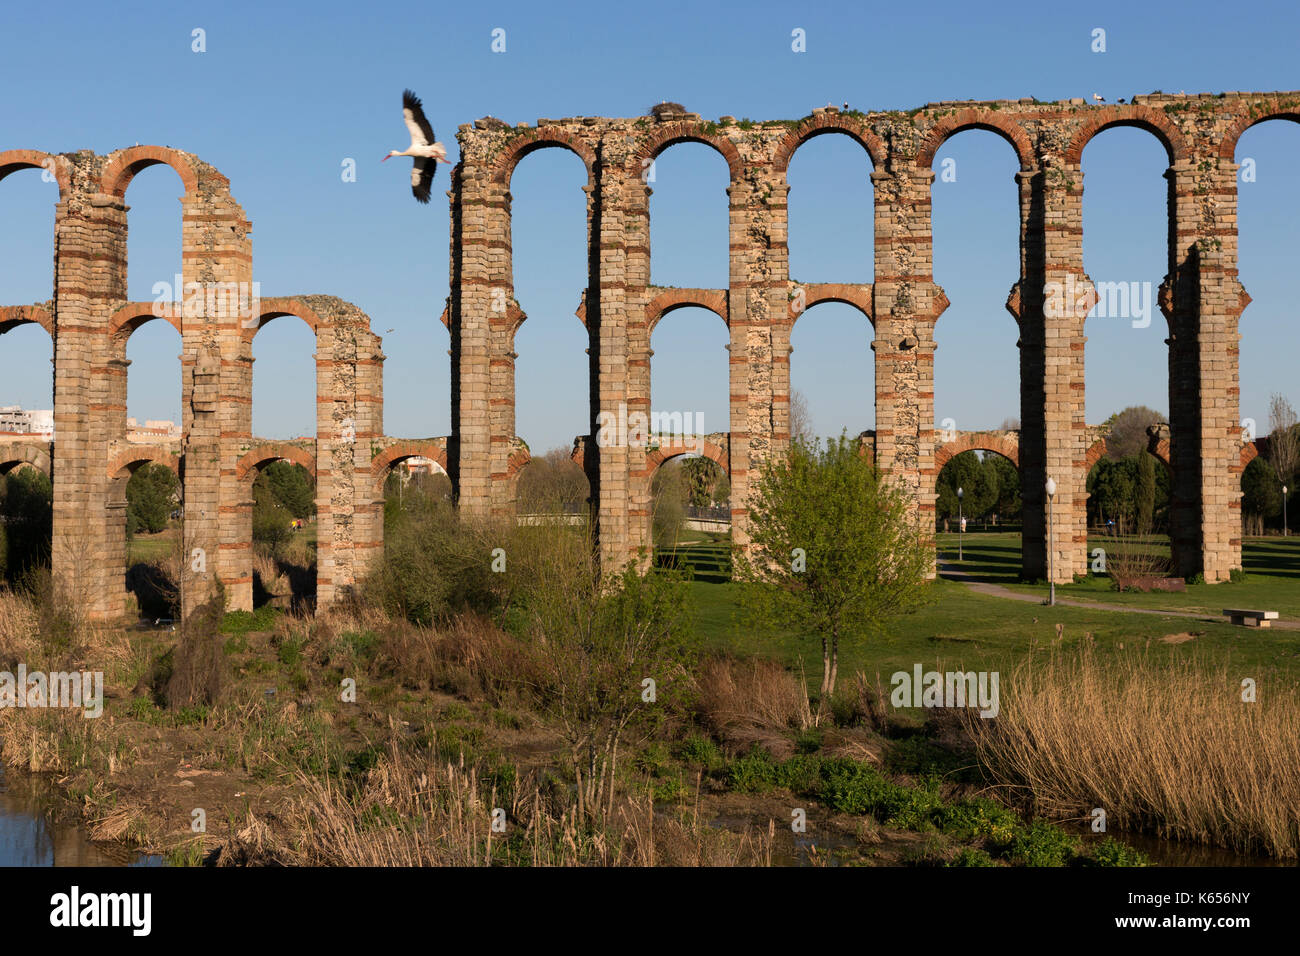 Aqueduct of the Miracles. Architecture of the Roman Empire. - Stock Image